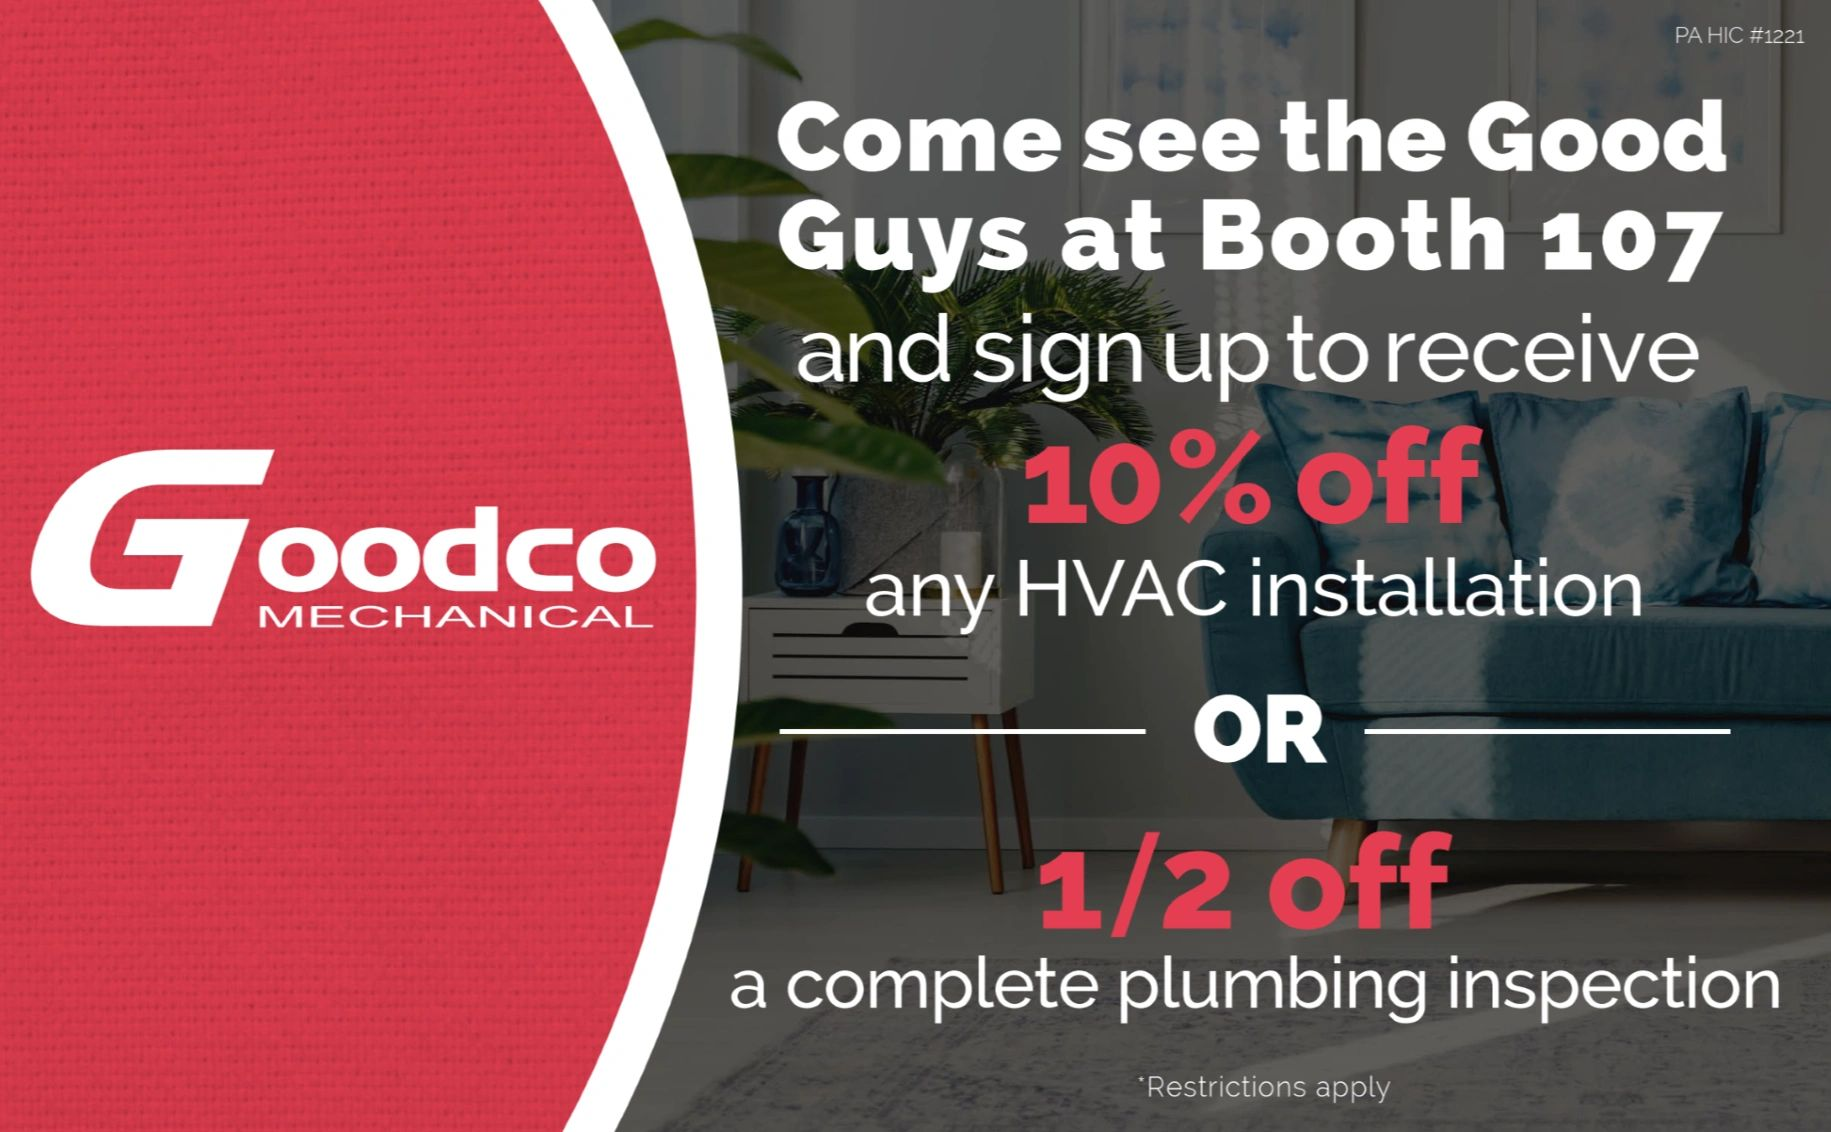 Goodco advertisment for 10 % off any HVAC service or 1/2 off Plumbing  inspection.